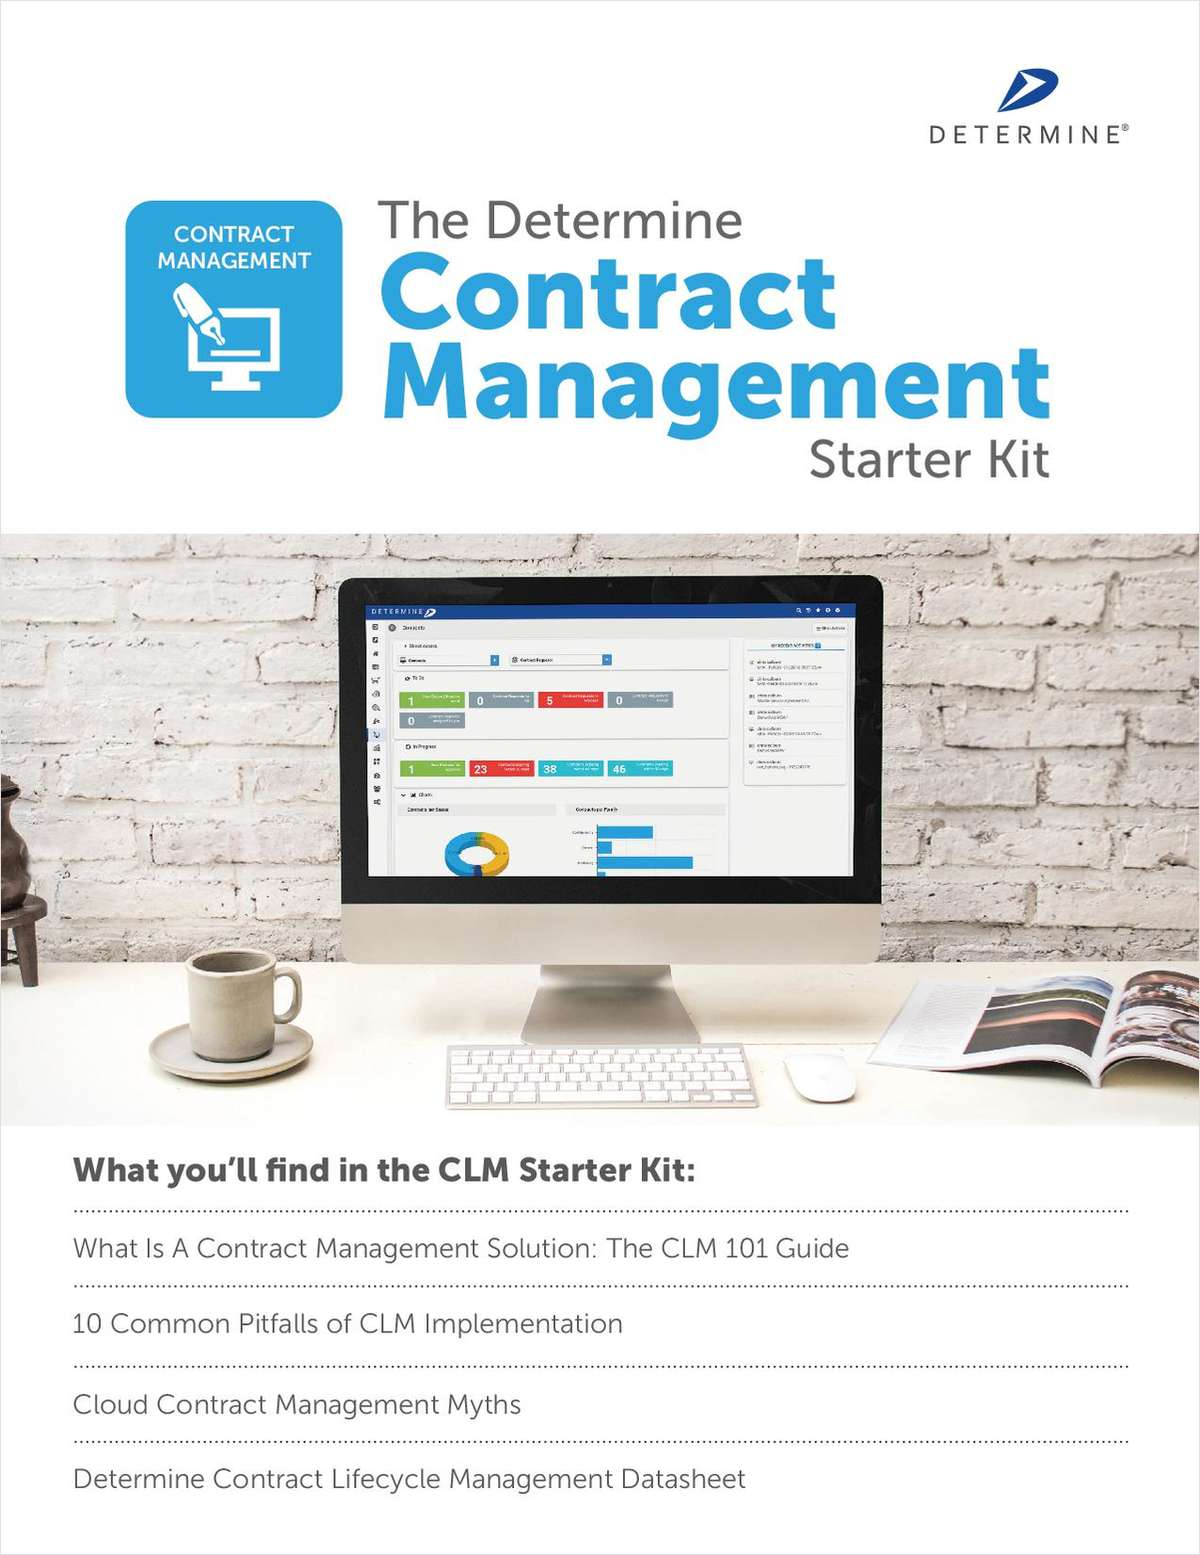 The Determine Contract Management Starter Kit